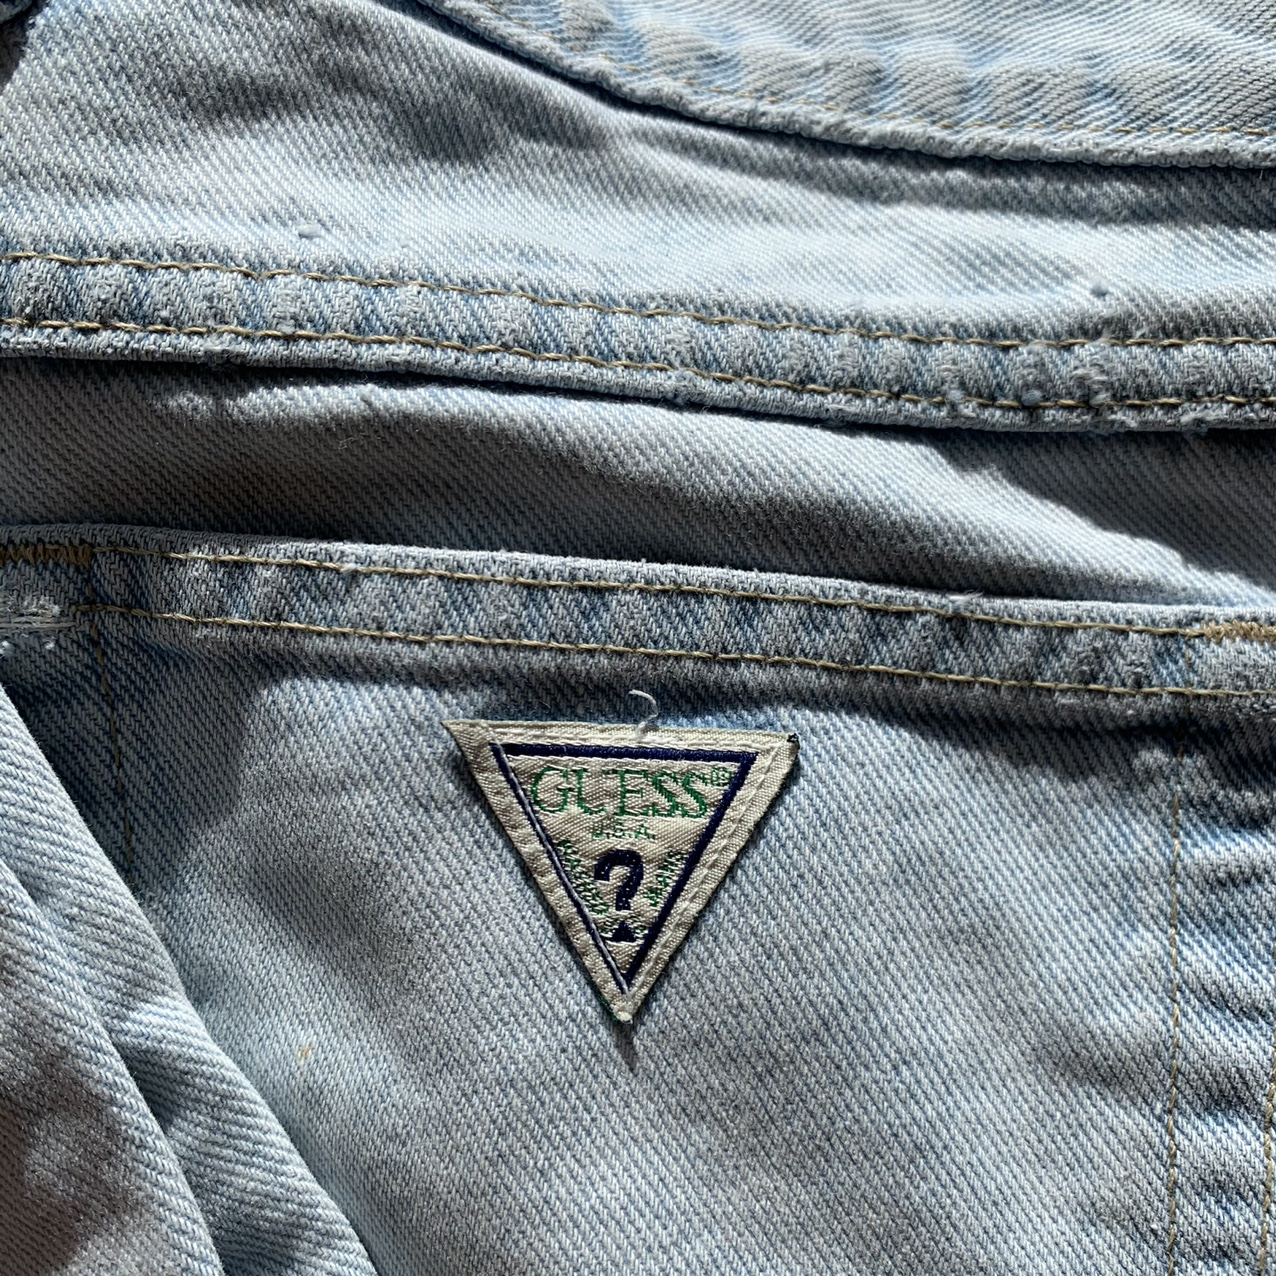 Product Image 2 - Light Blue Wash Guess Jeans these